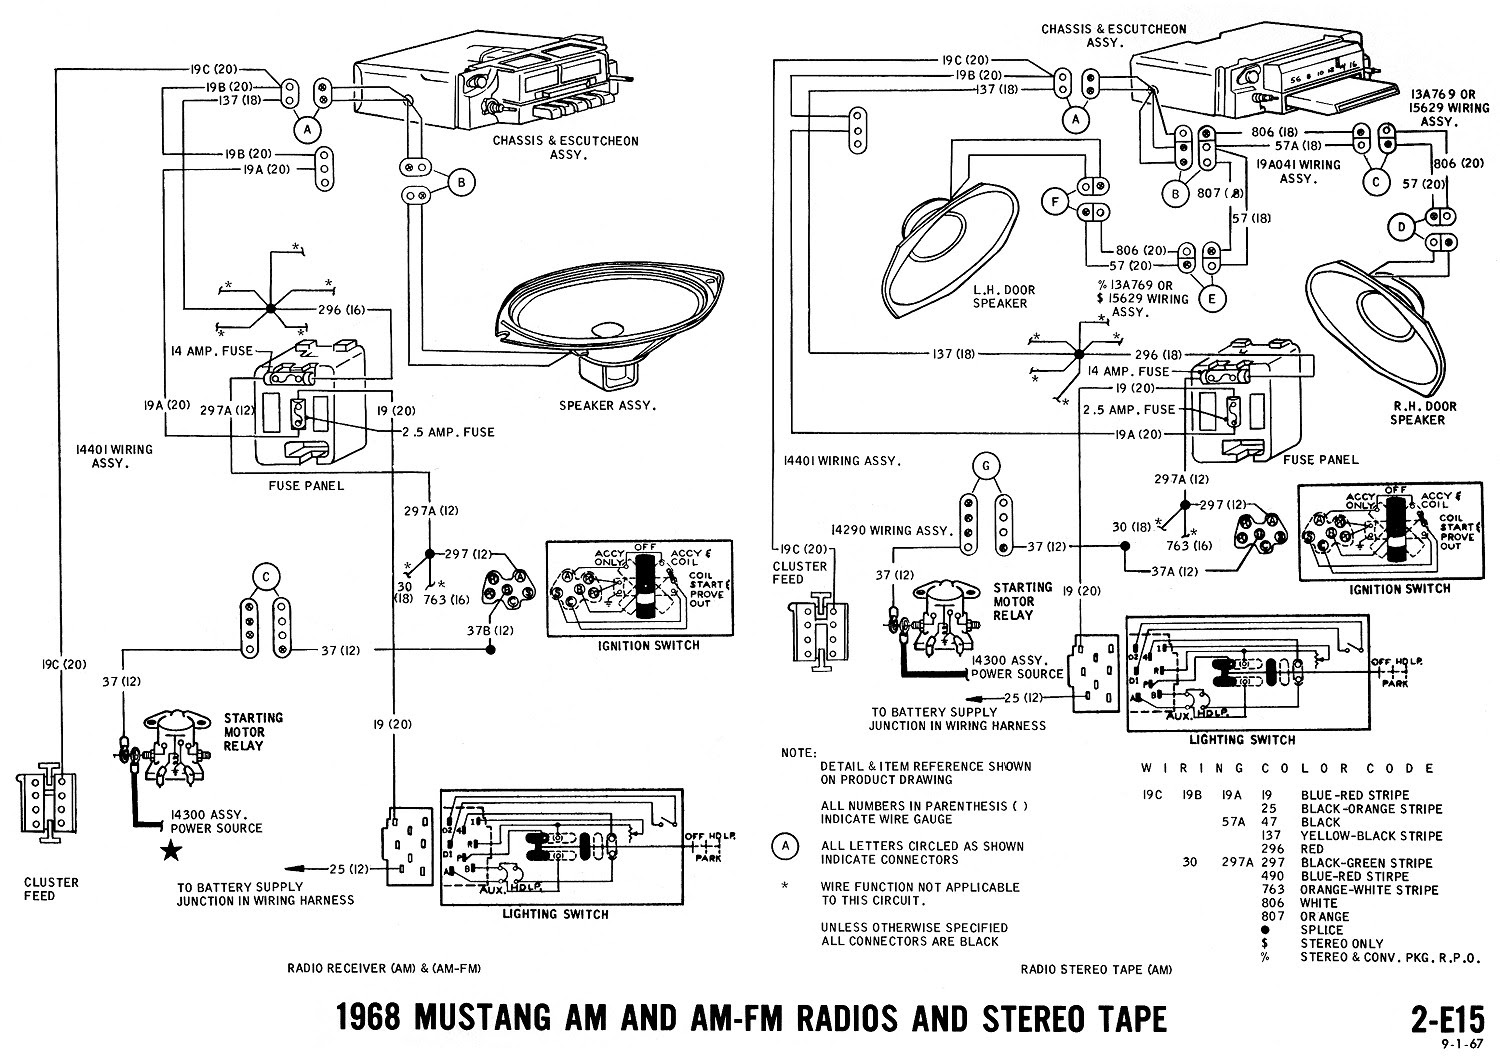 Free Diagram Auto Stereo Wiring Diagram Full Version Hd Quality Wiring Diagram Ilwiring Bandb Veneto It